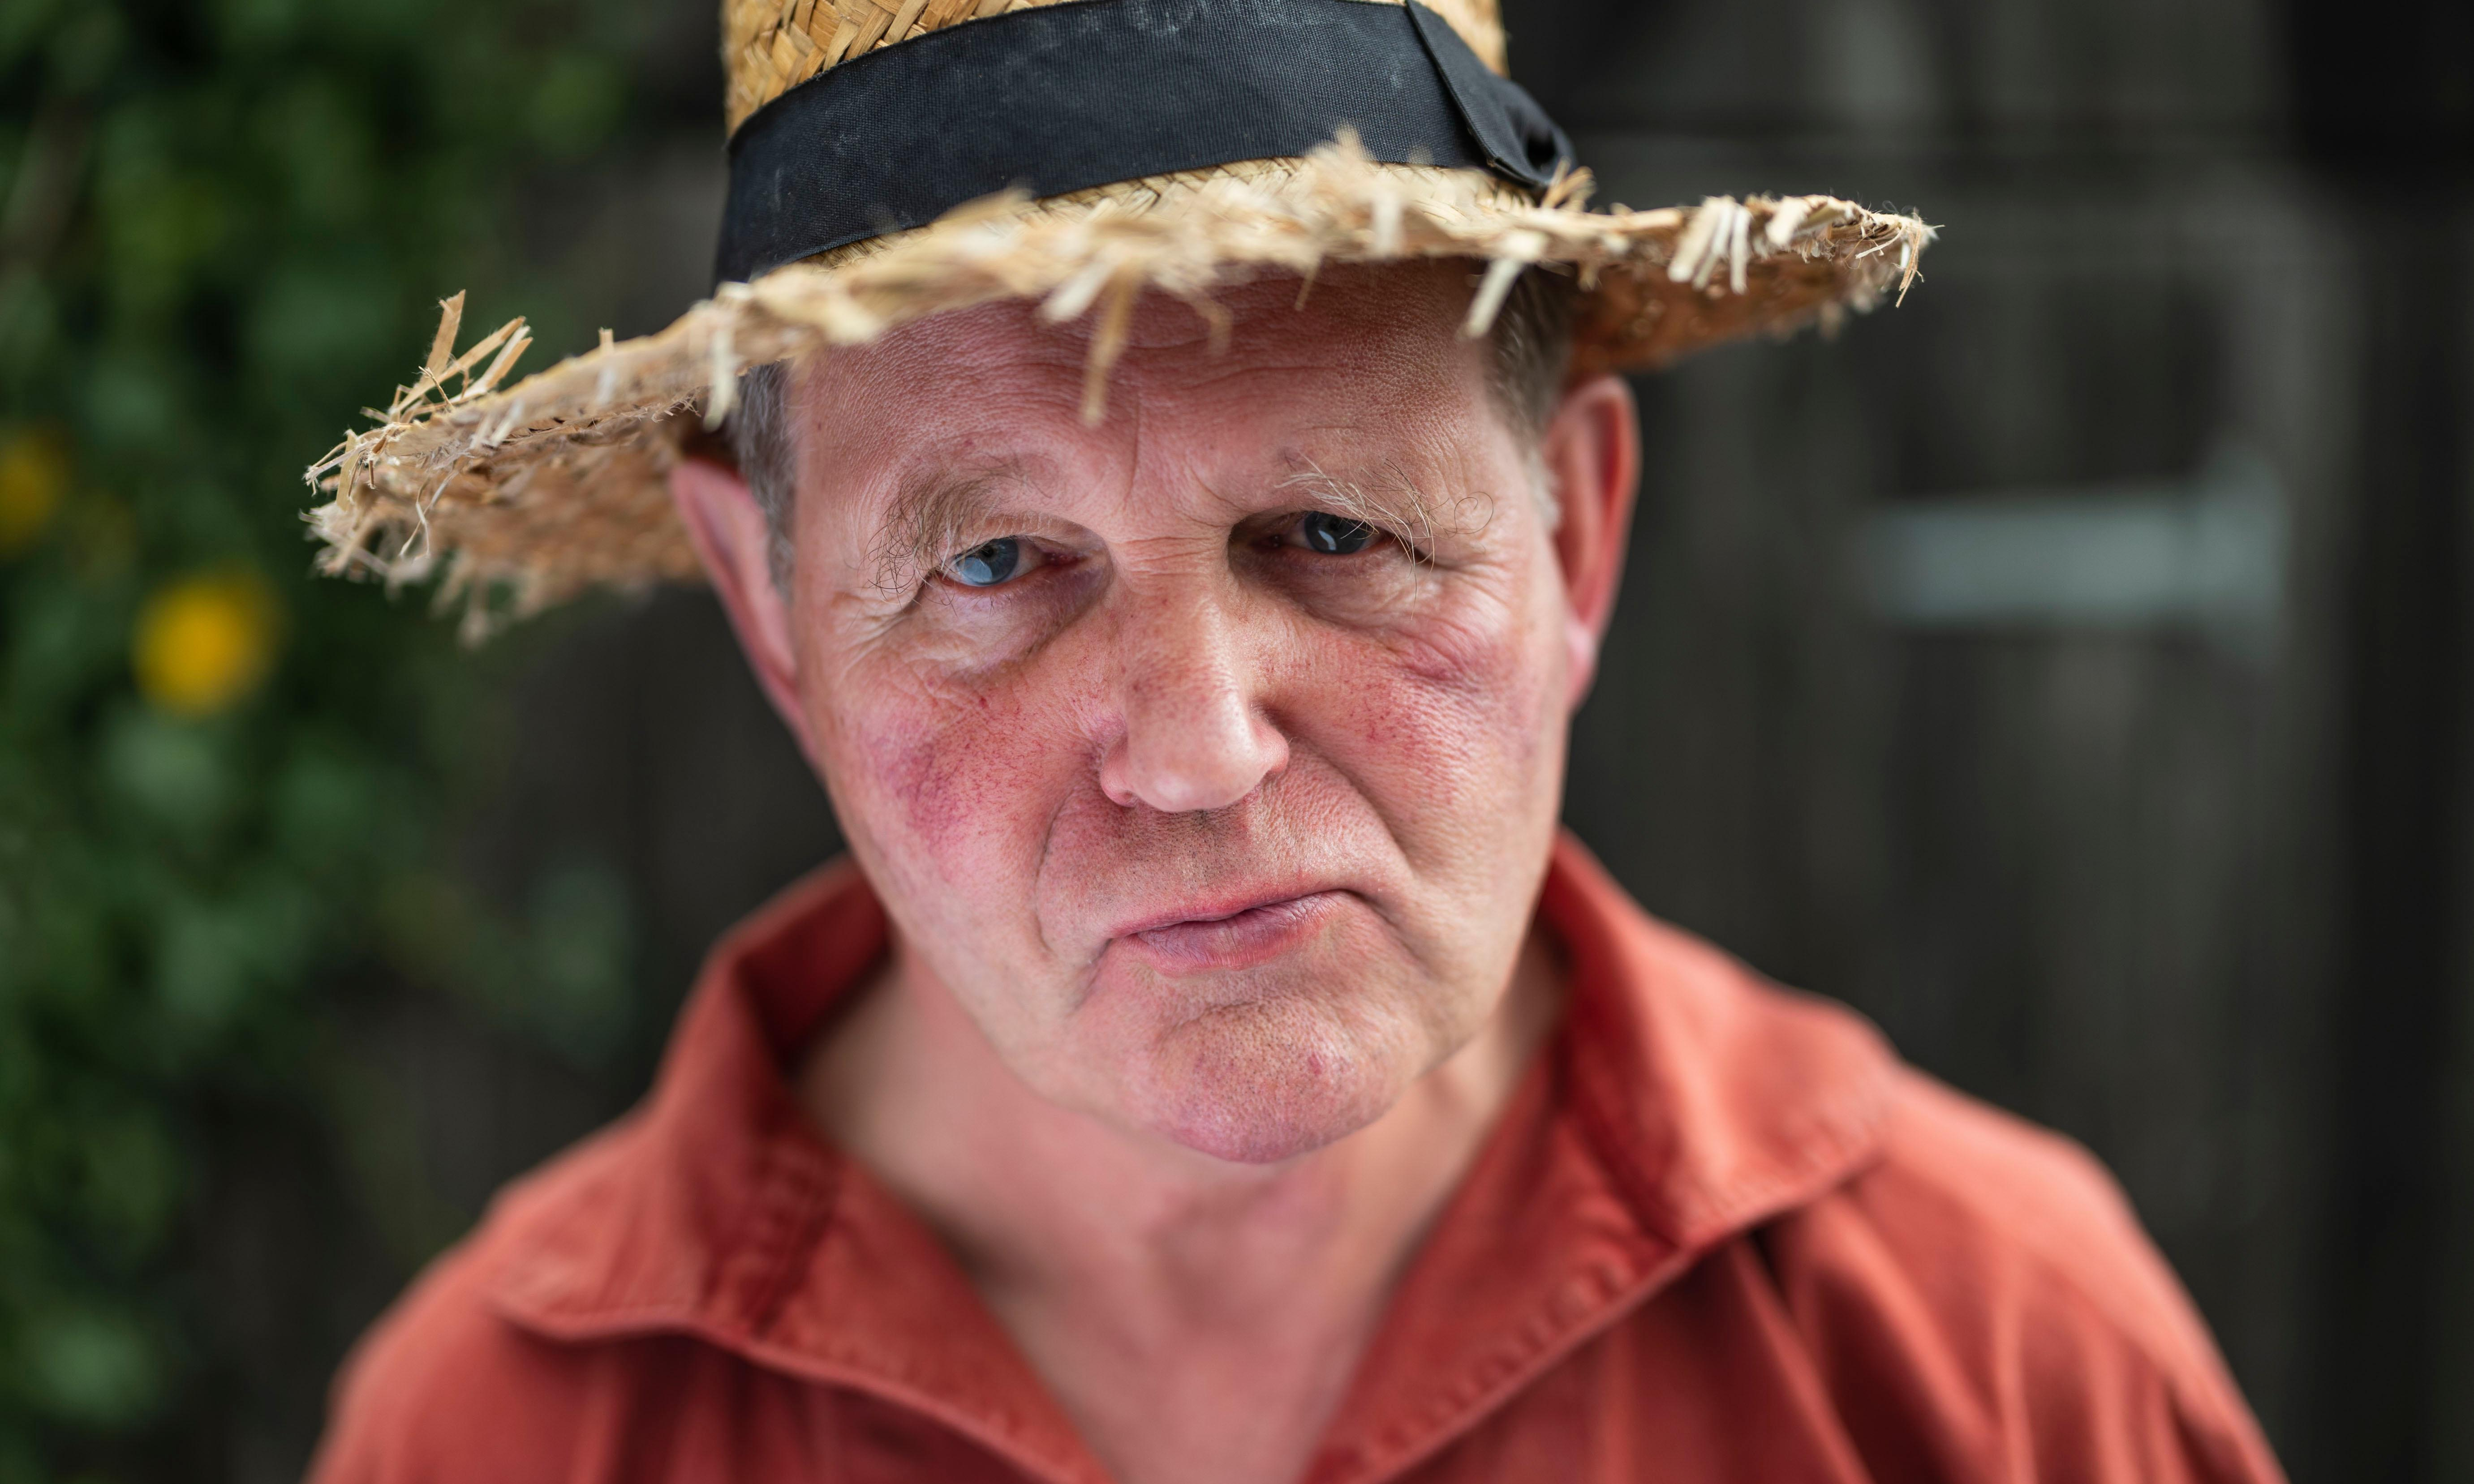 Michael Morpurgo on fighting Brexit: 'I've been spat at. It's almost civil war'